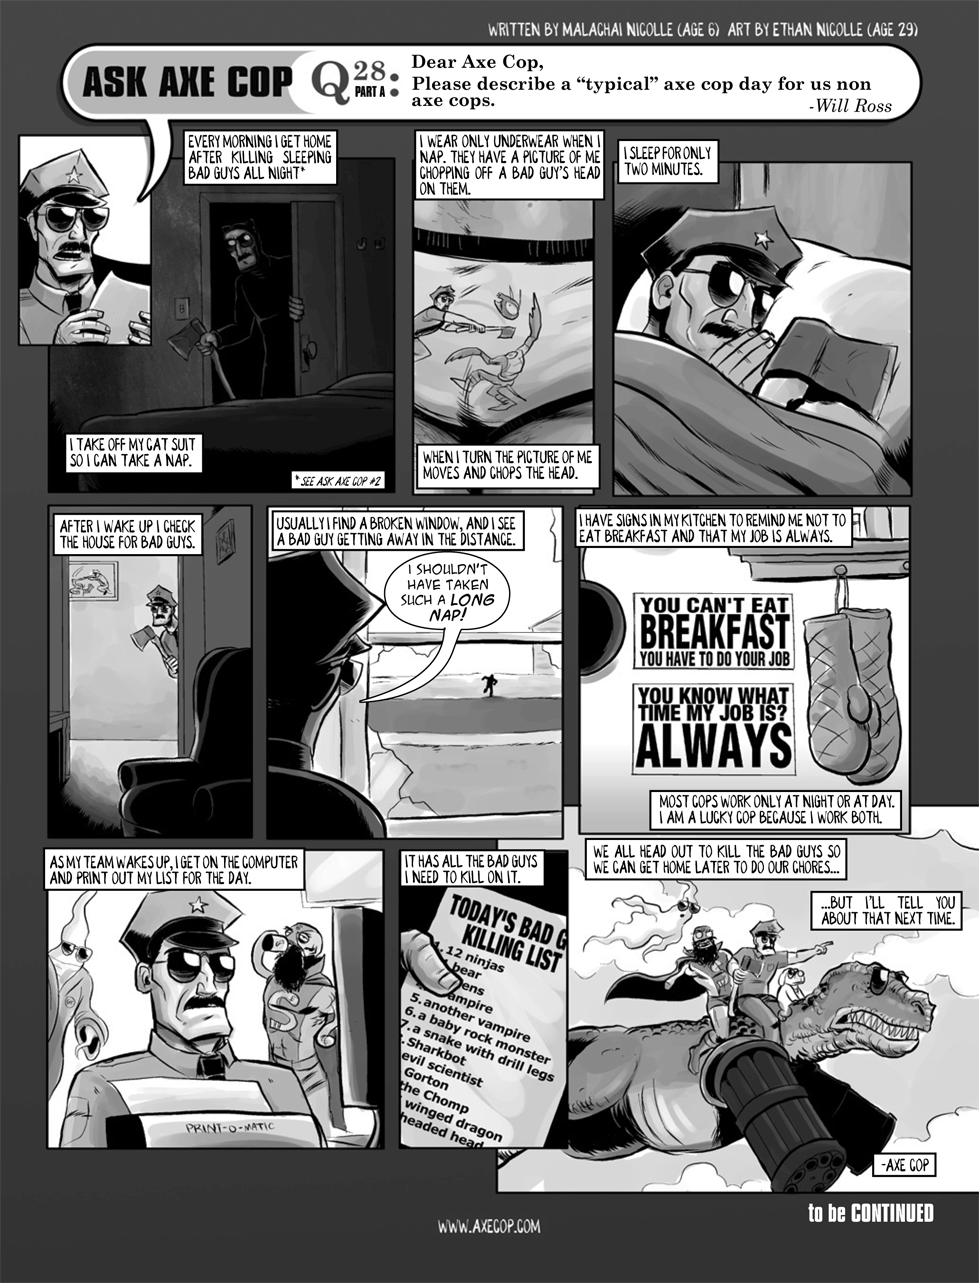 One of my favorite two-part answers. Sometimes an Ask Axe Cop question will spark a massive, neverending answer. This was one of those. Original post: Original post: http://axecop.com/comic/ask-axe-cop-28/